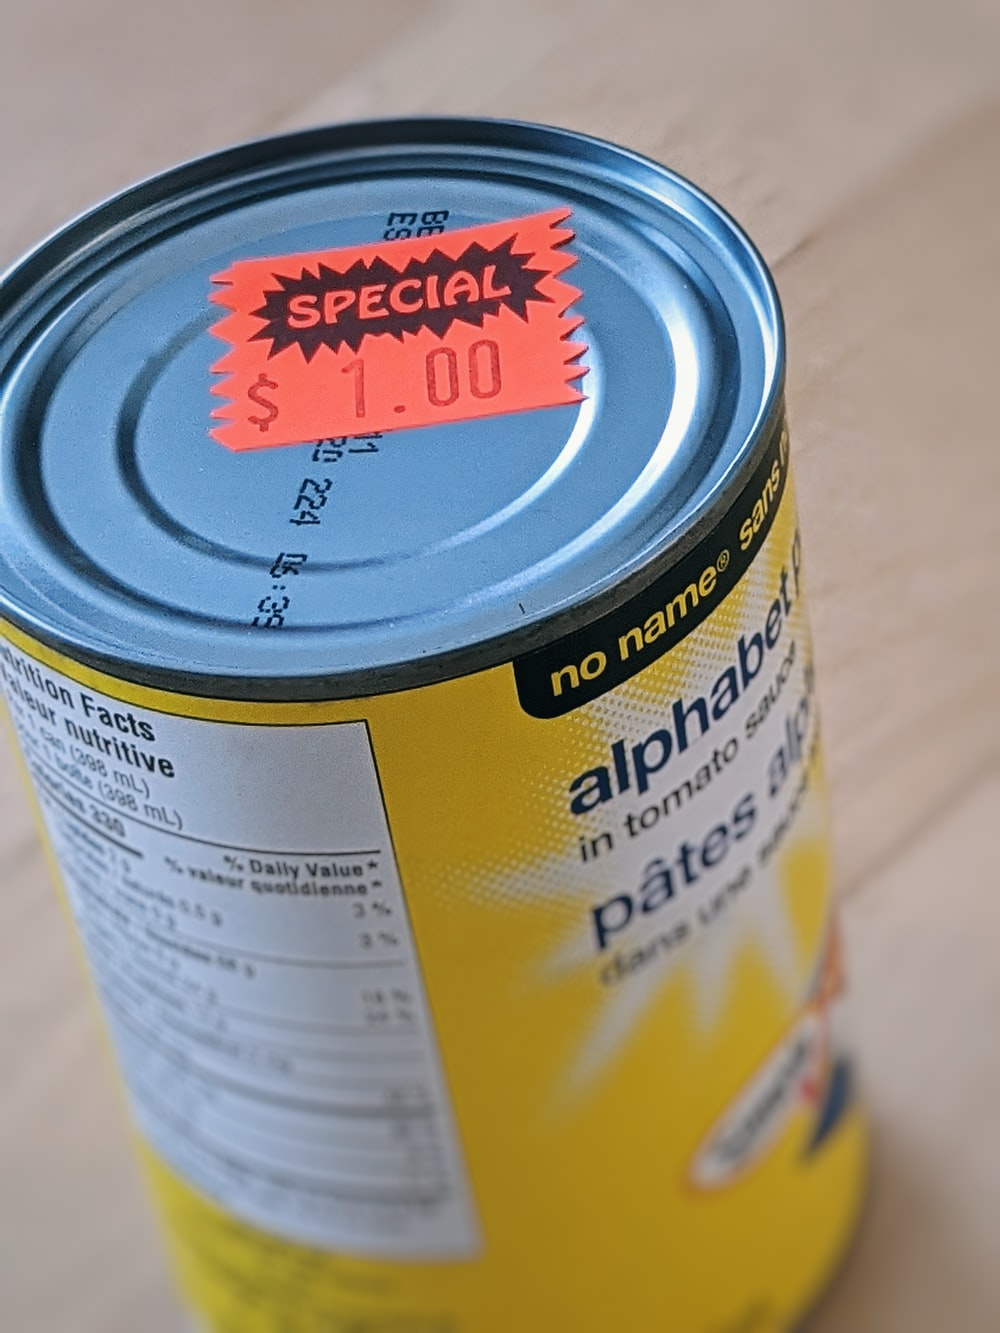 yellow and white labeled can